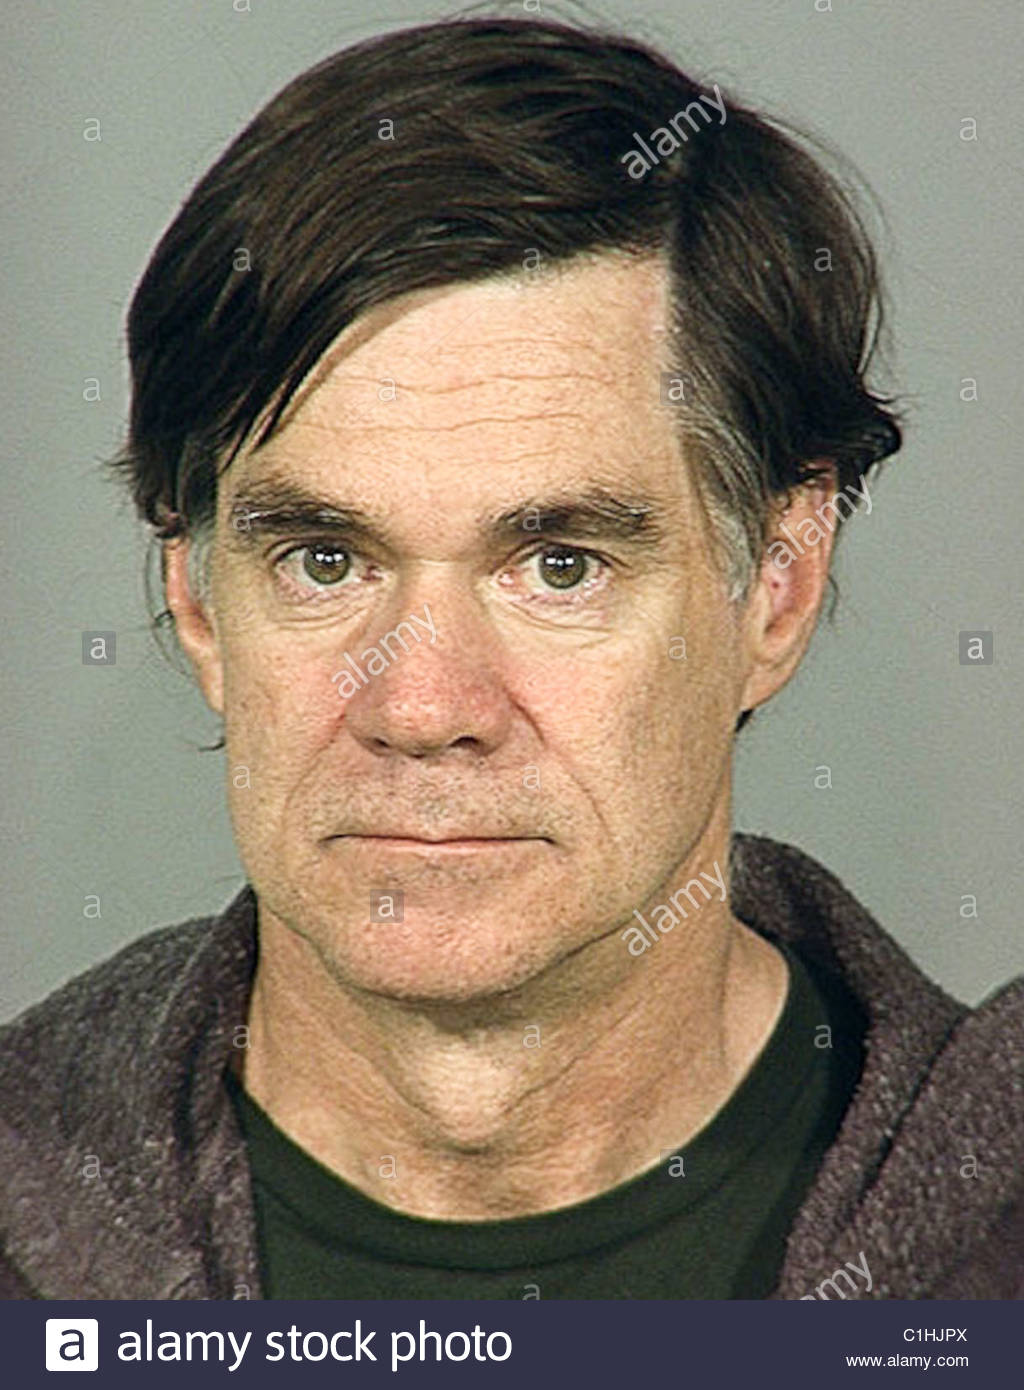 Gus Van Sant Mugshot Stock Photo